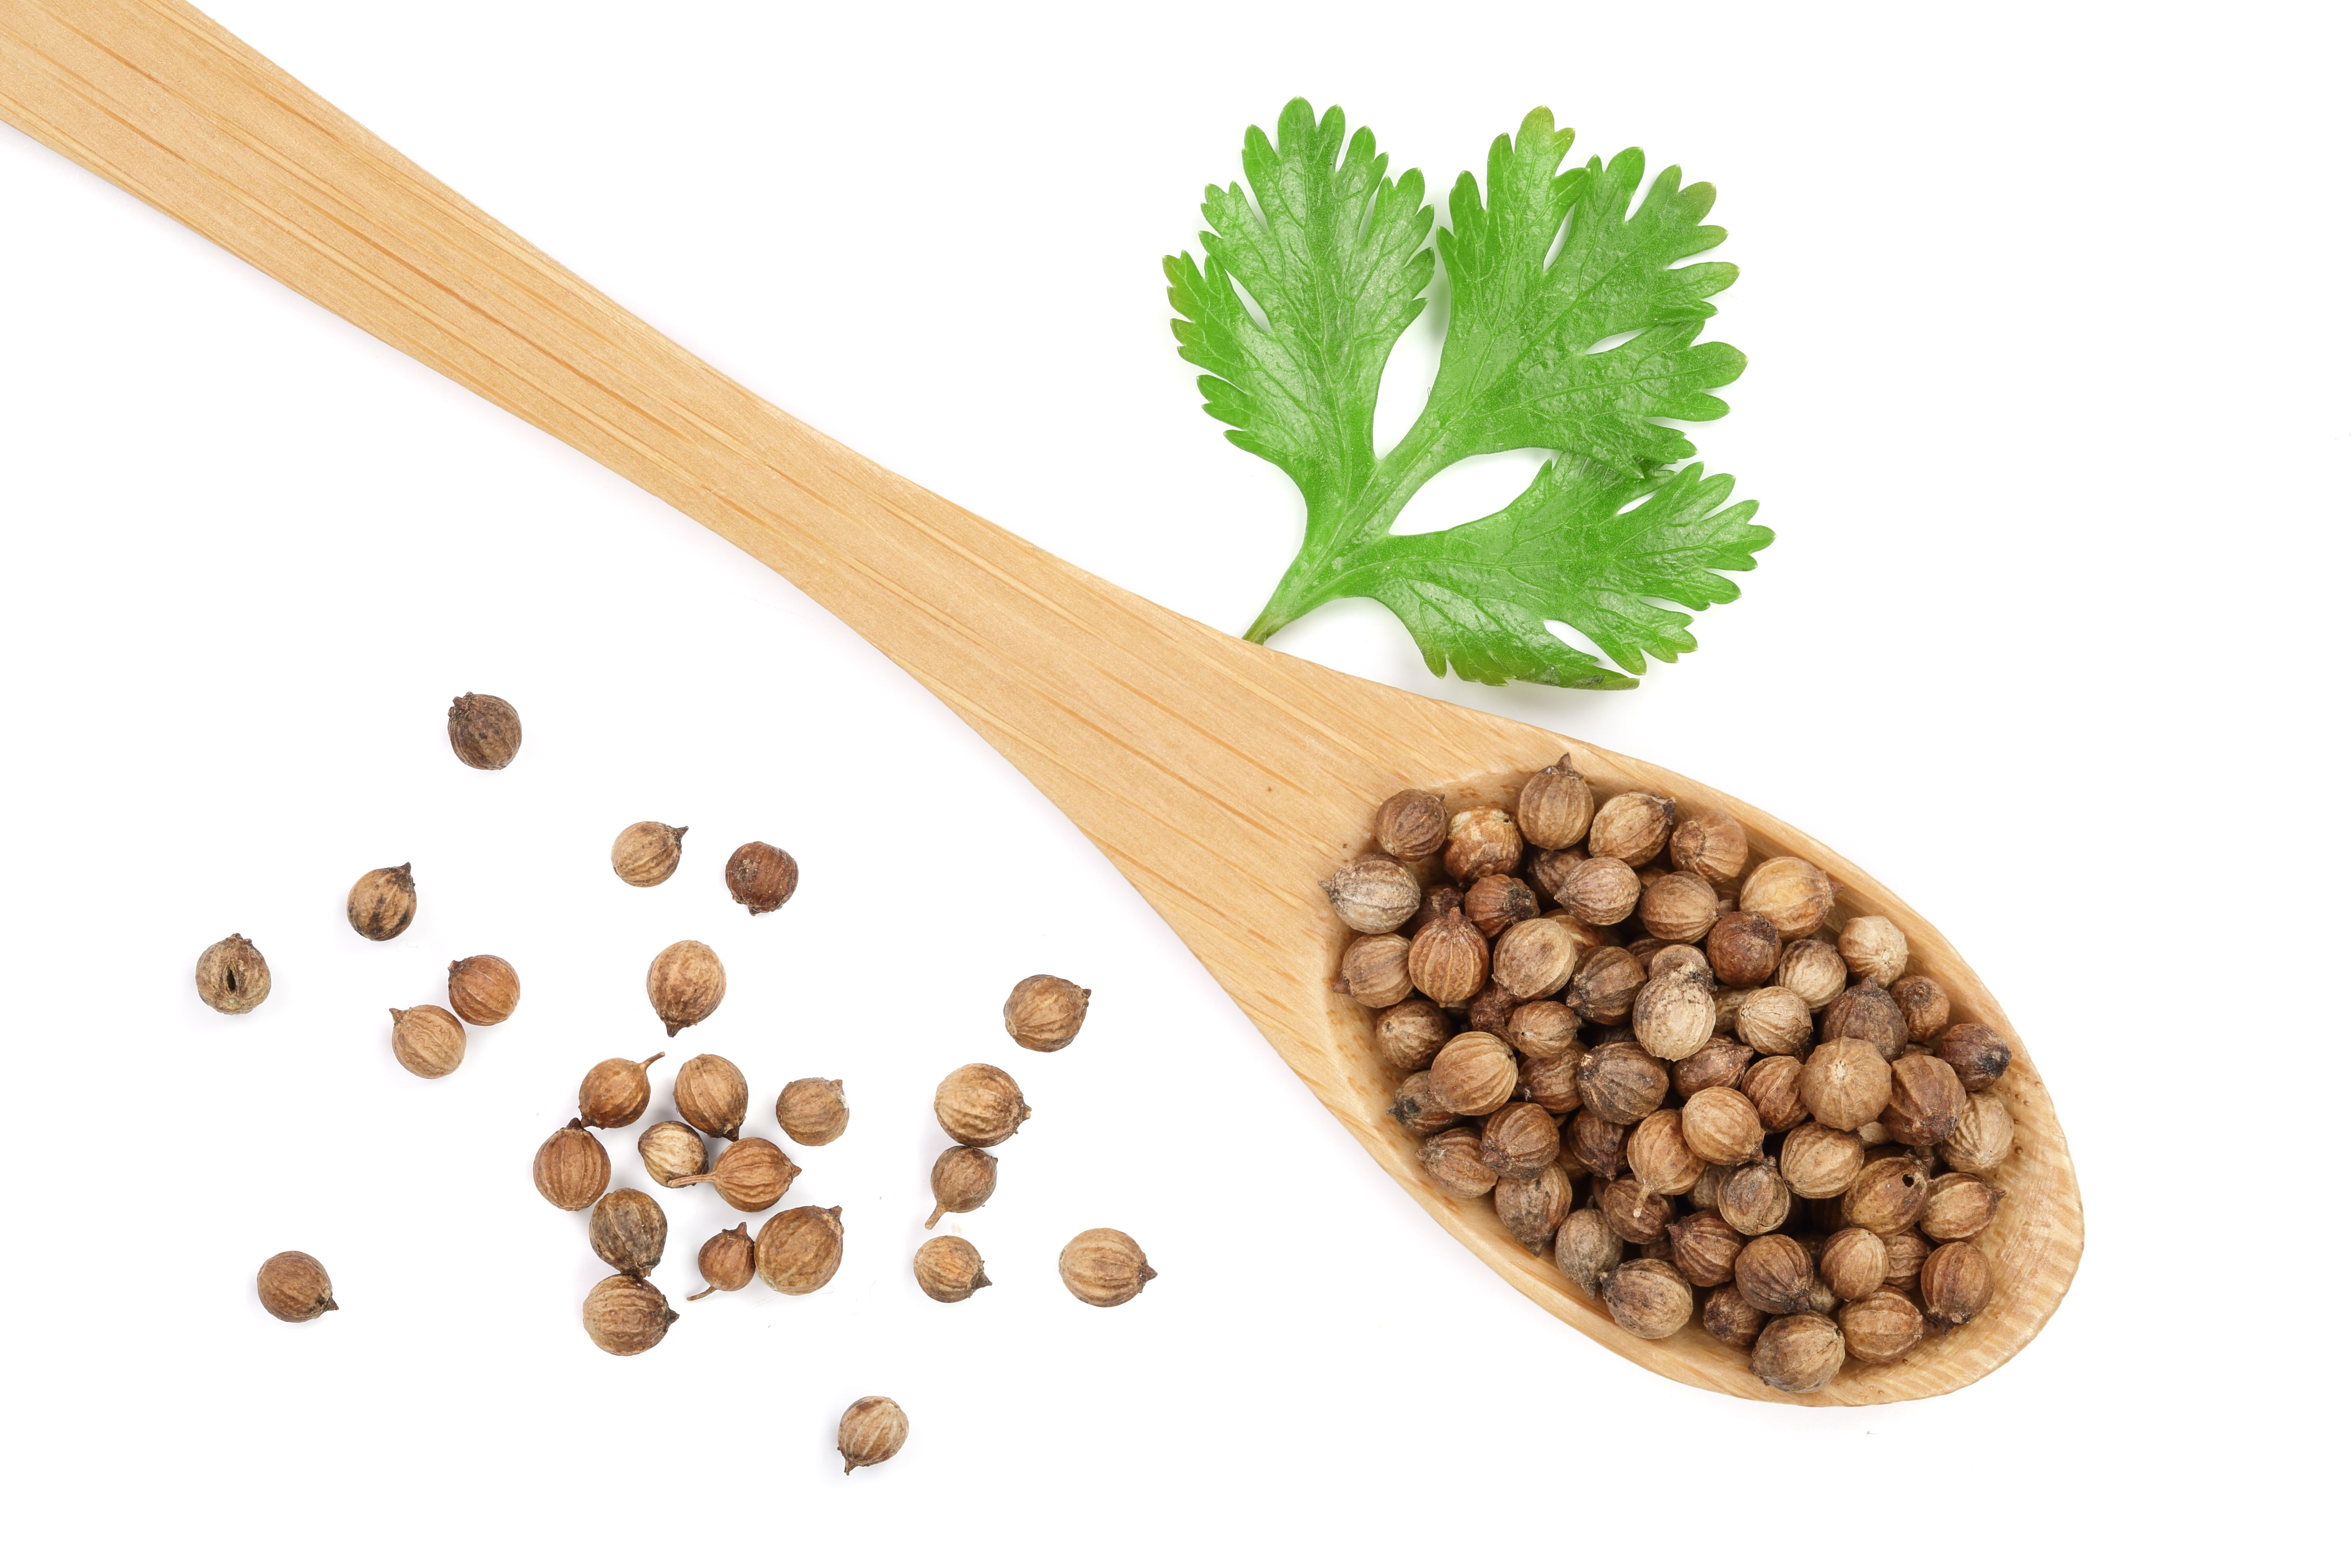 Cilantro is the leafy part of the coriander plant. The seeds are coriander spice.